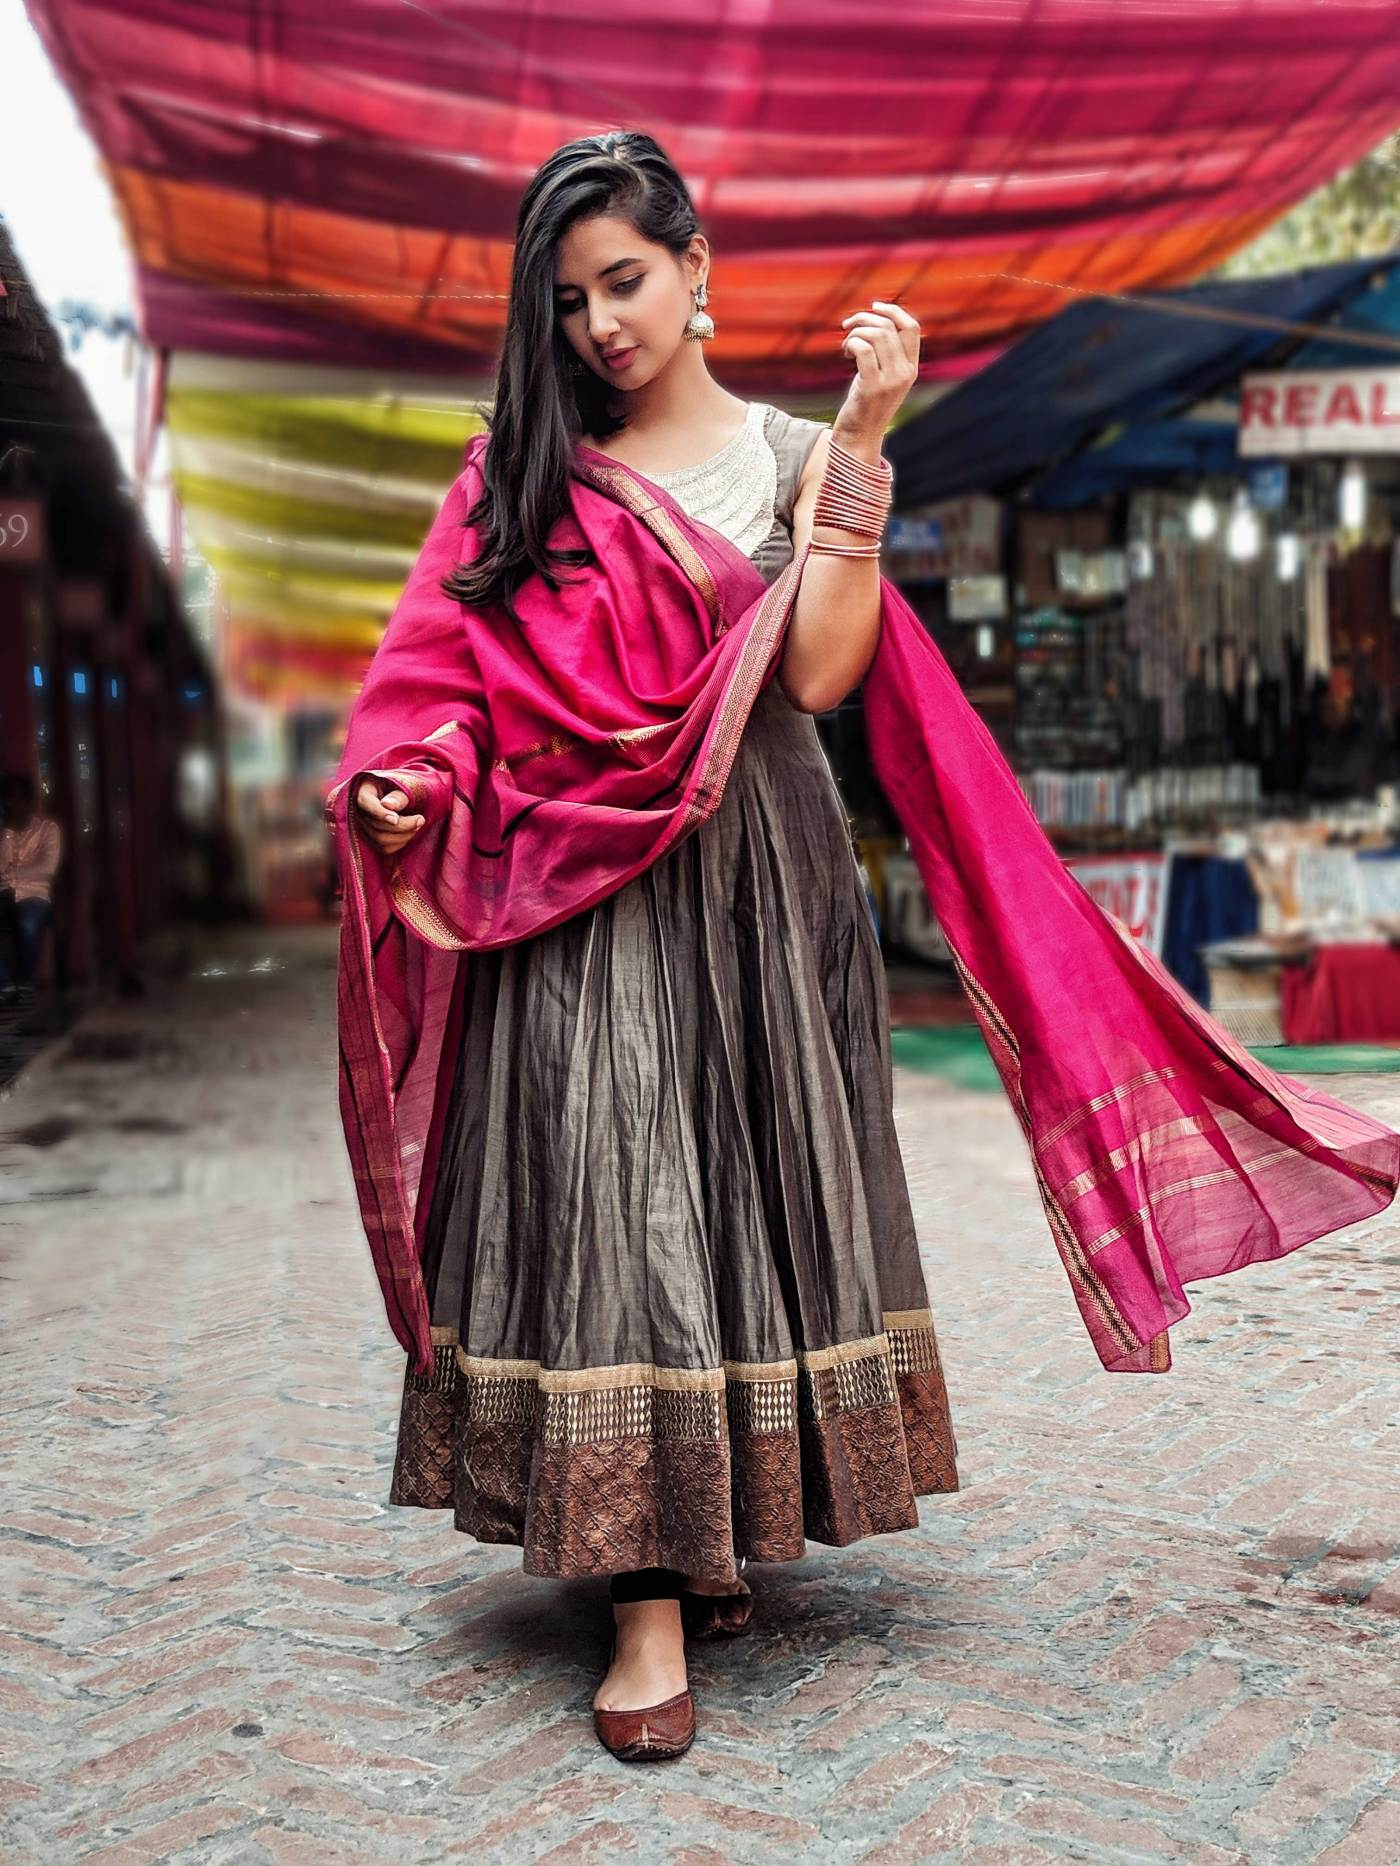 Outfit ideas for Diwali